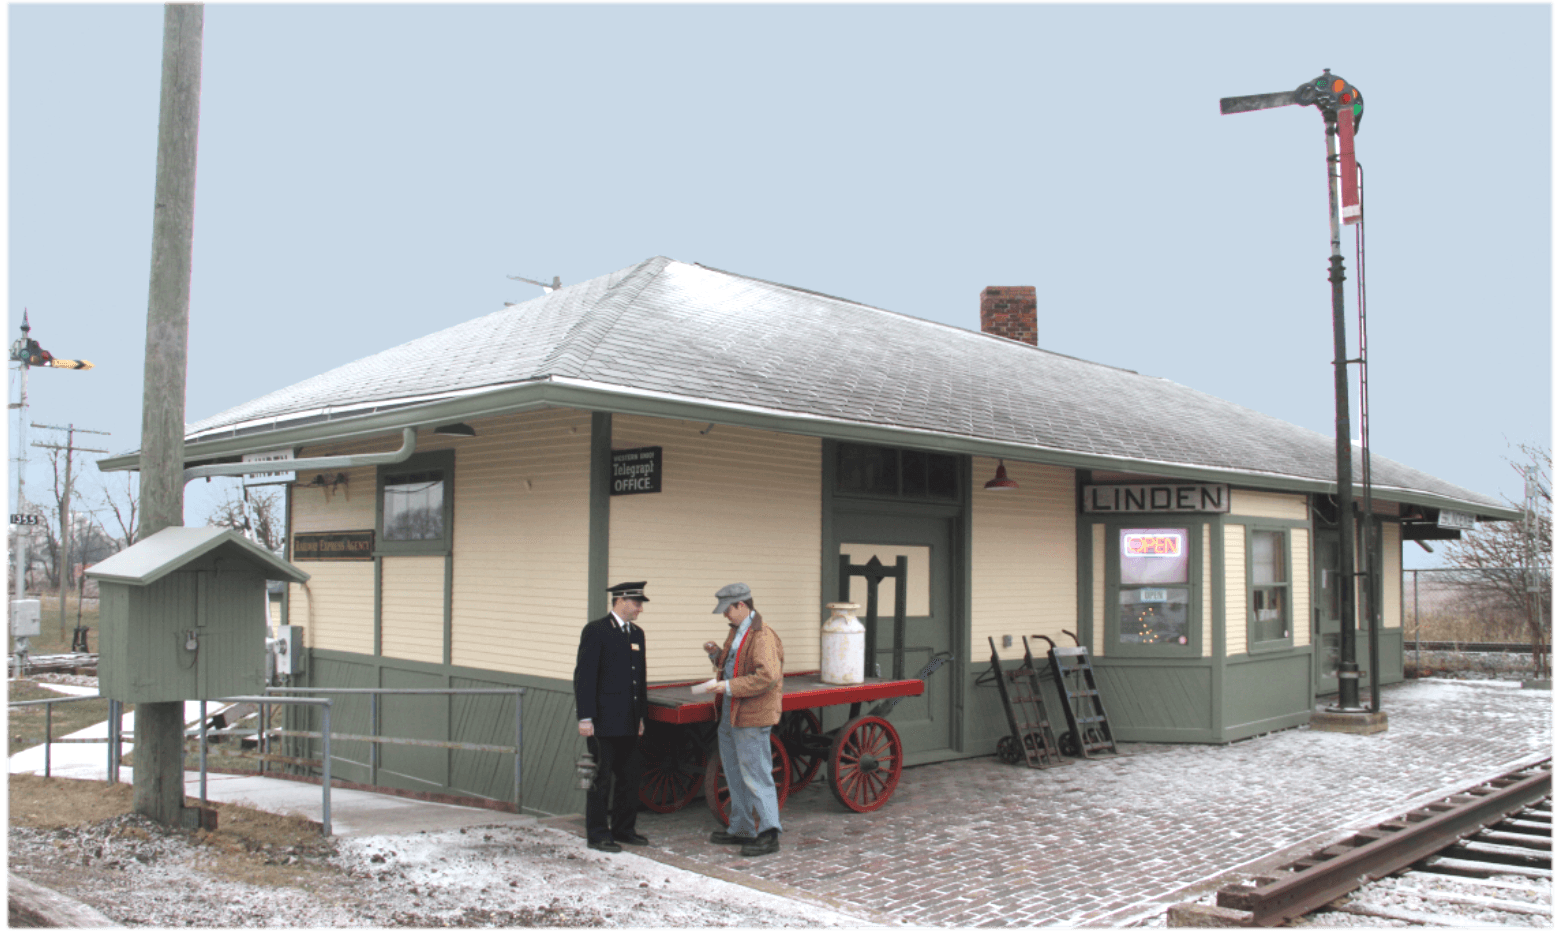 Indiana montgomery county linden - Learn More Linden Depot Museum